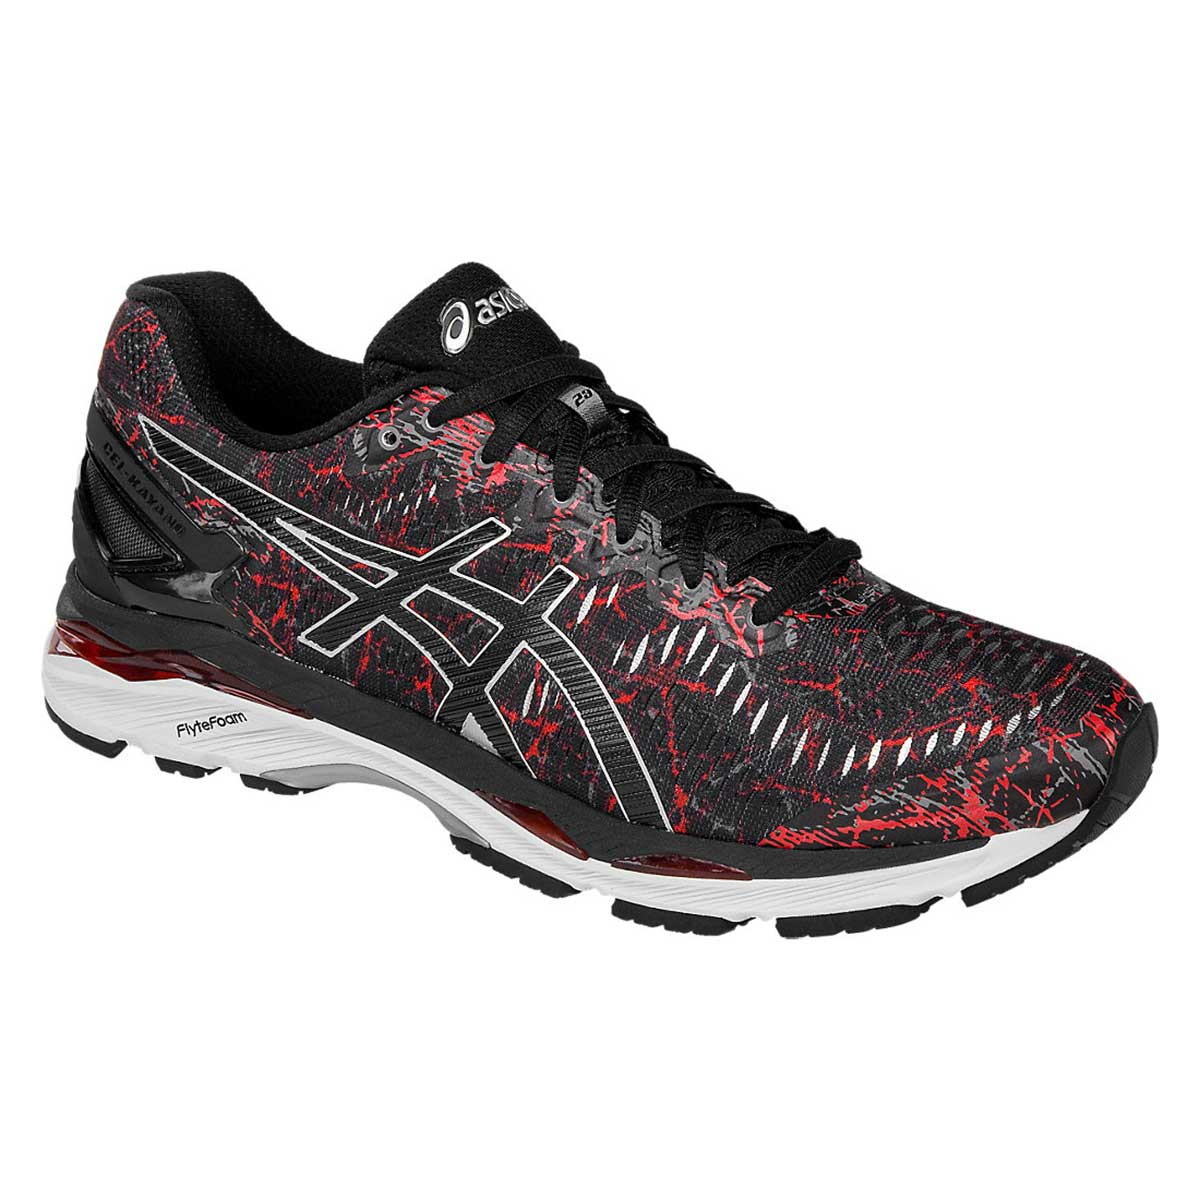 official photos 98539 74f6e Asics Gel-Kayano 23 Running Shoes (Vermilion/Black/Silver)